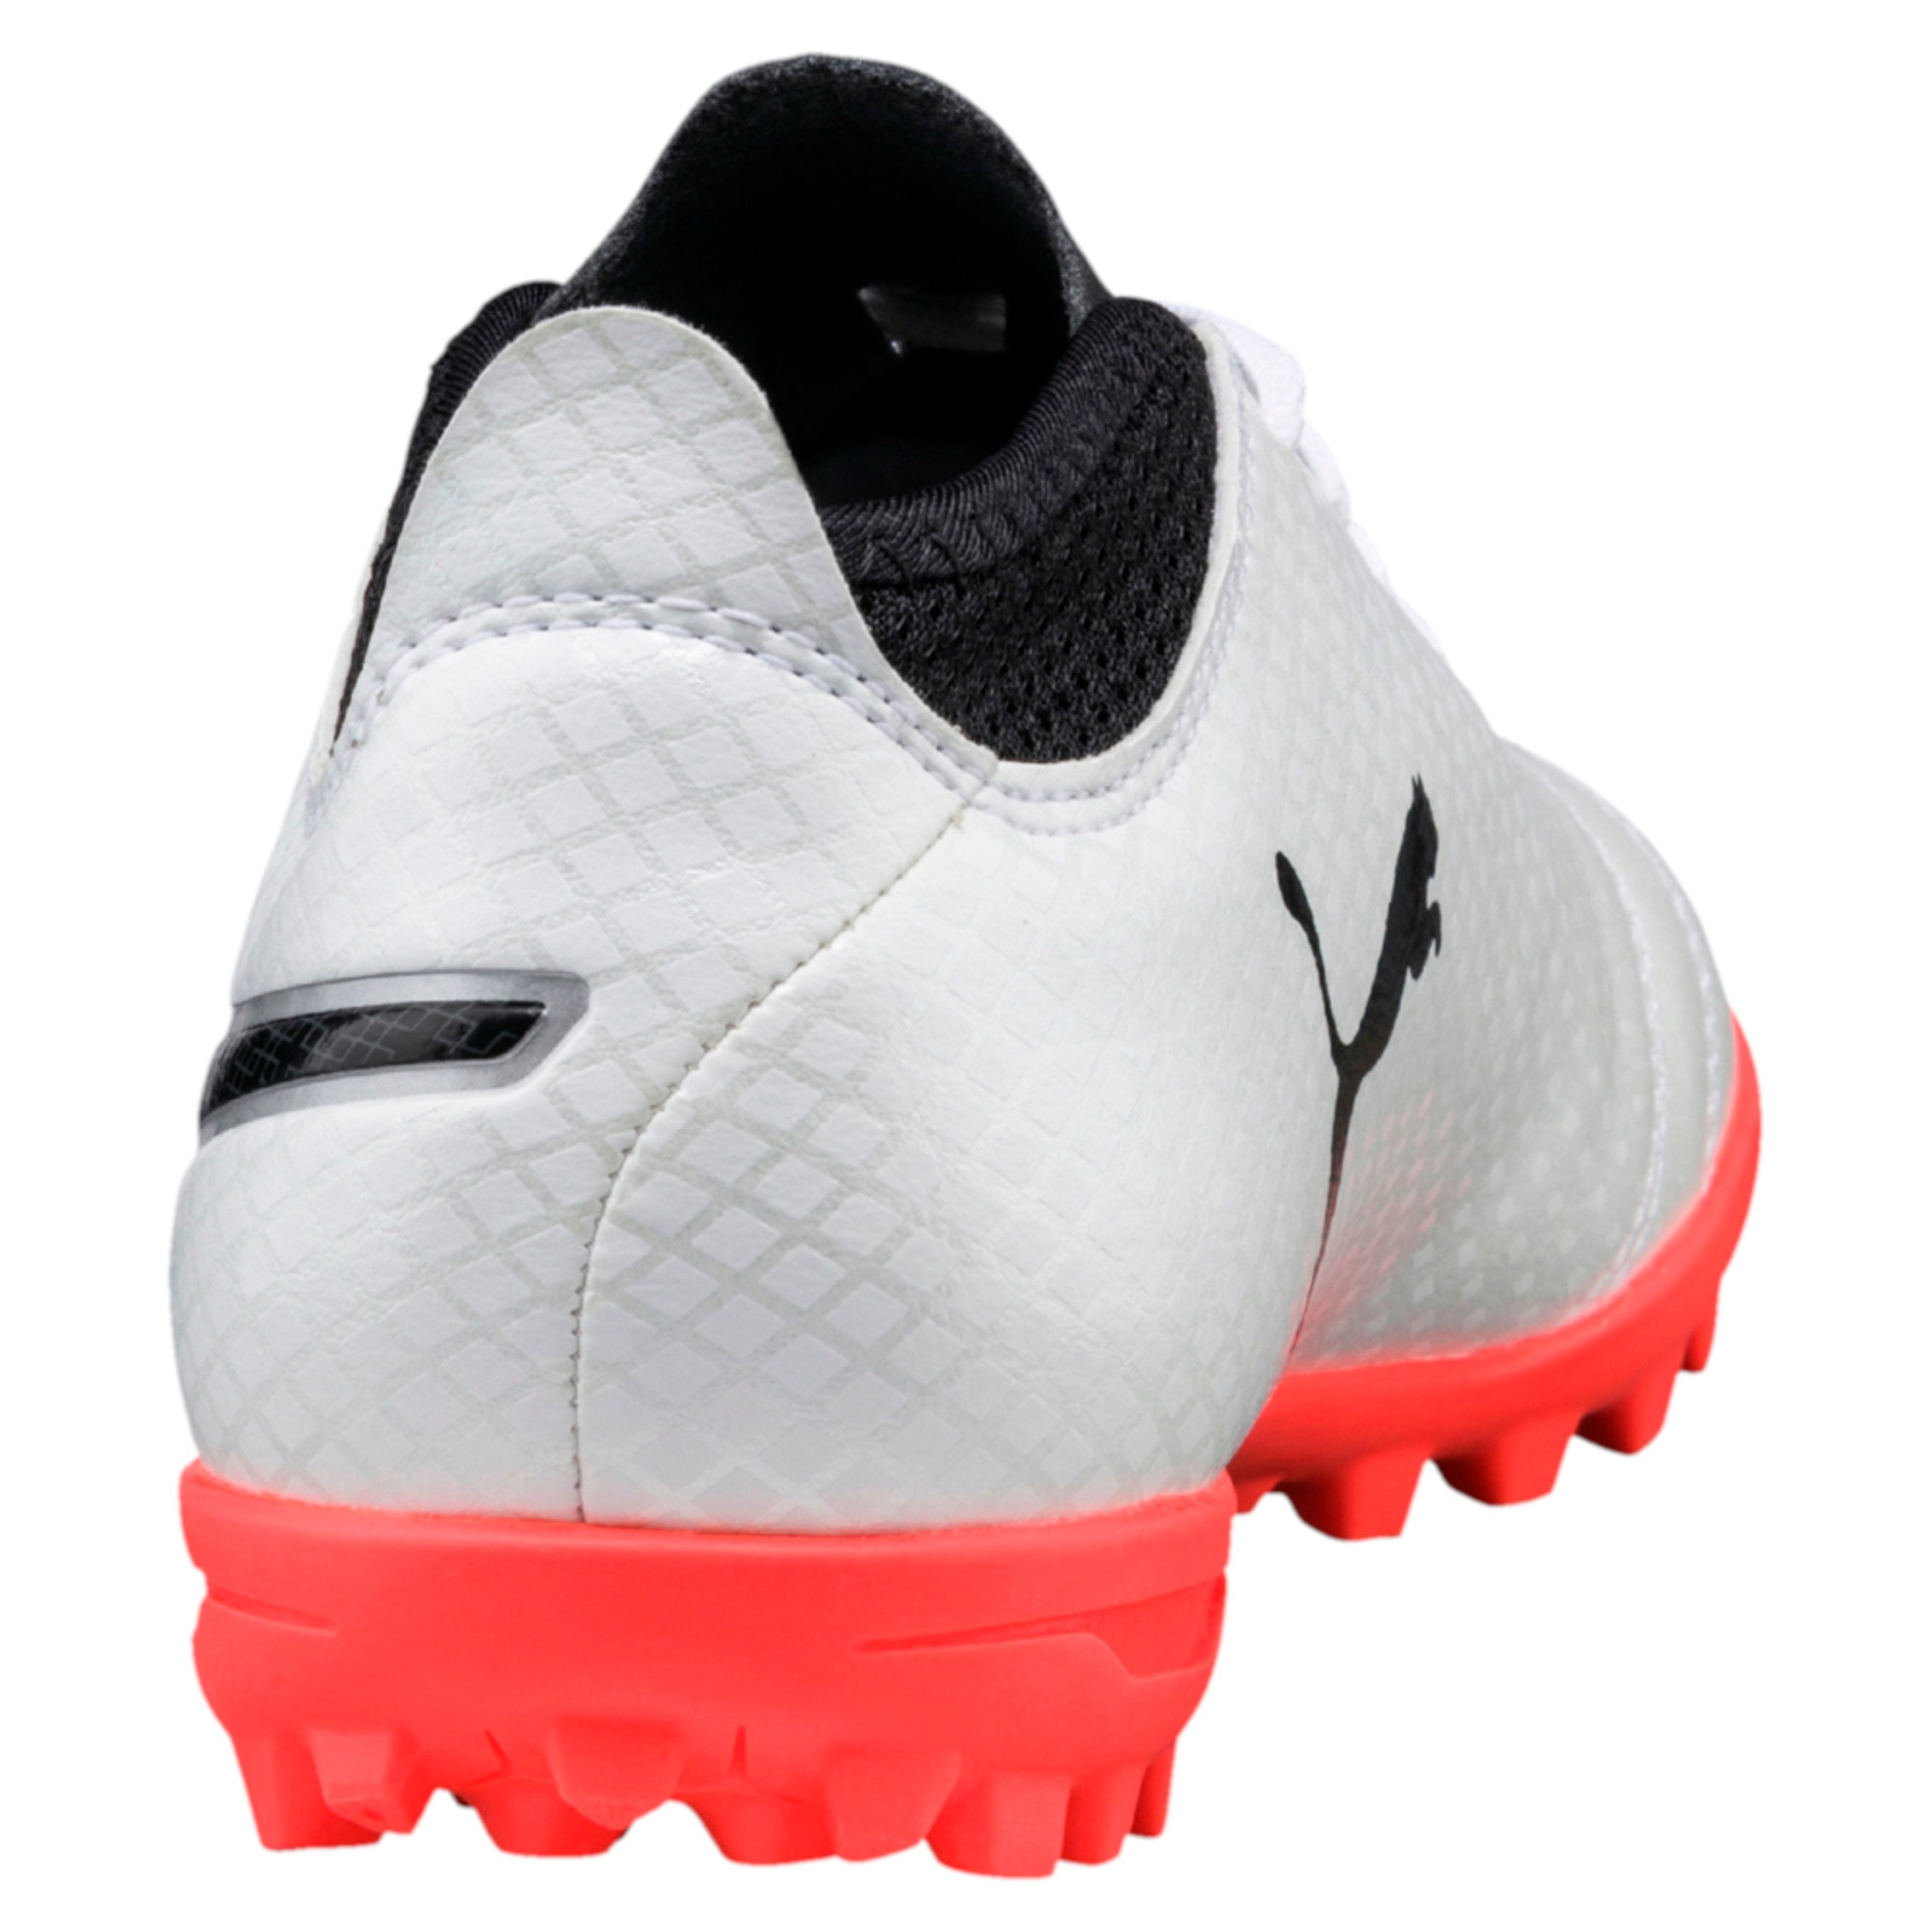 Thumbnail 6 of ONE 17.4 TT Kids' Football Boots, White-Black-Coral, medium-IND